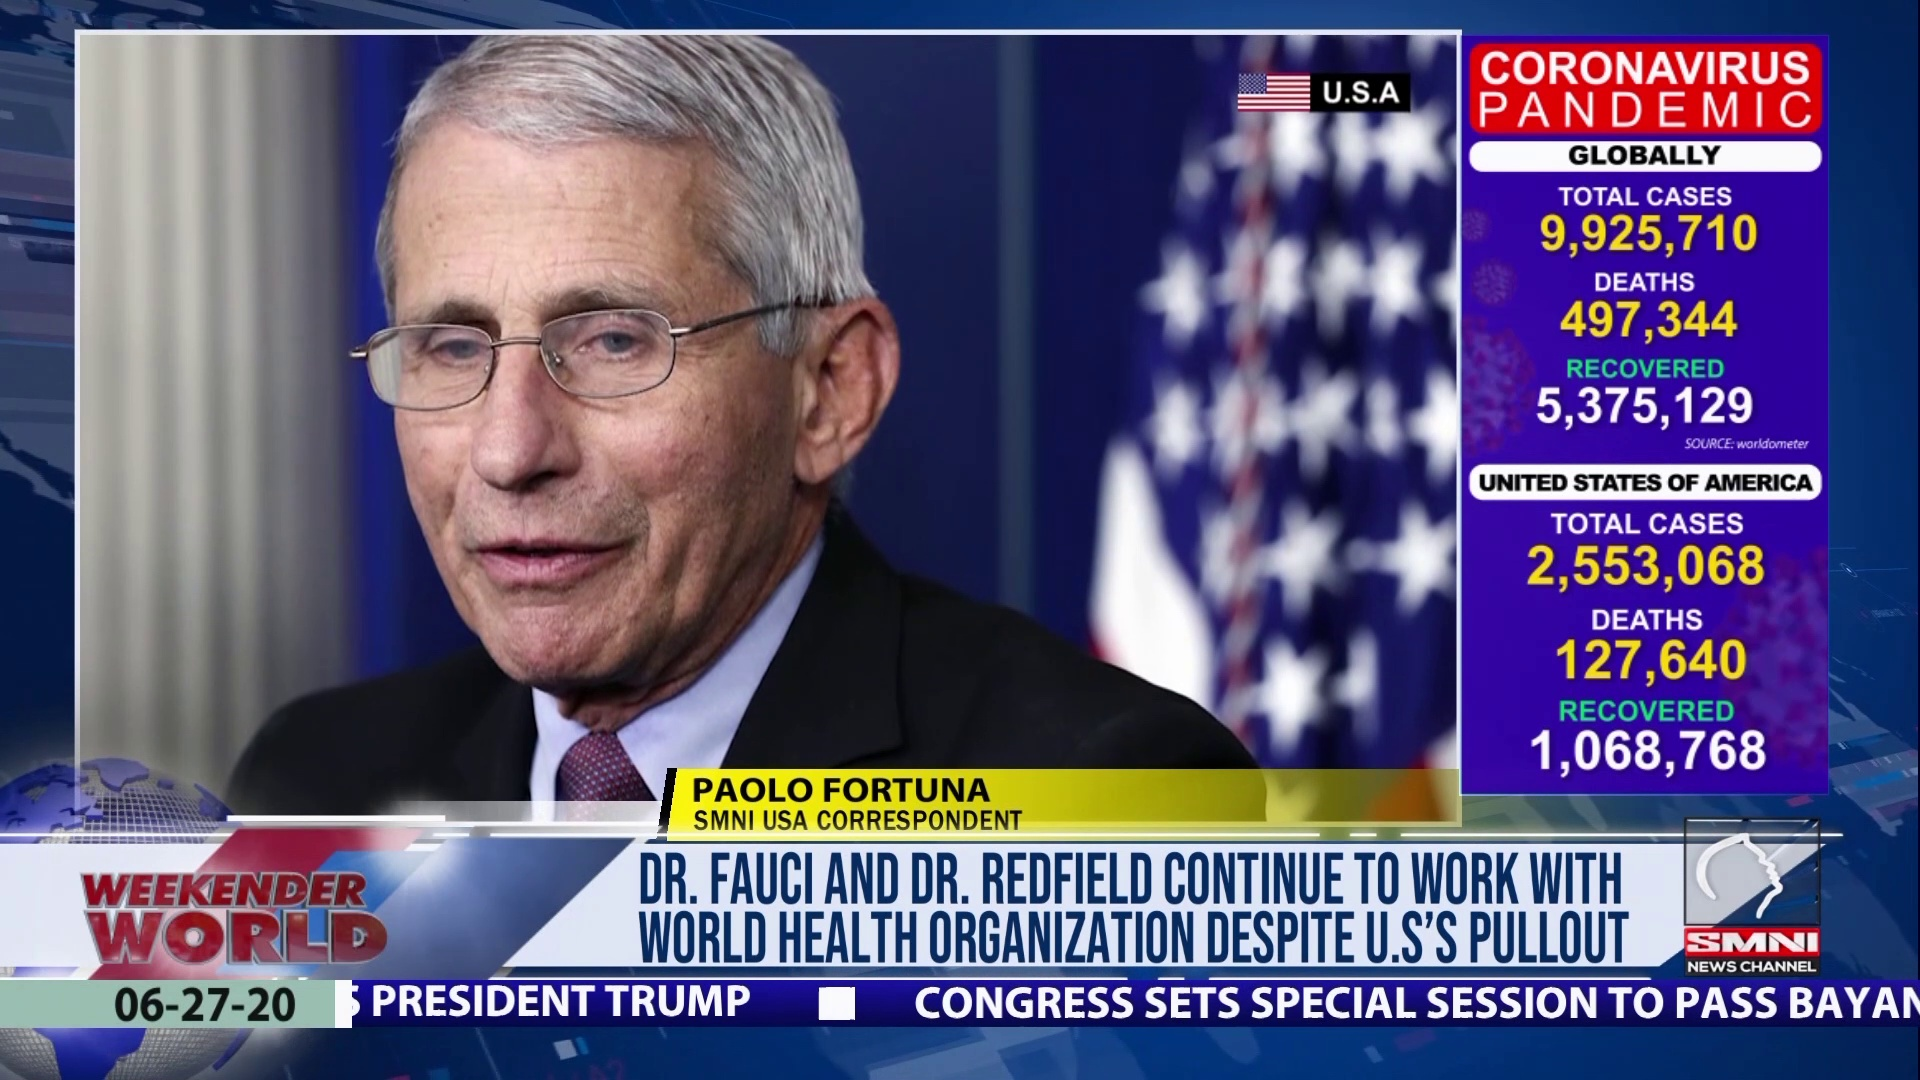 Dr. Fauci and Dr. Redfield continues to work with World Health Organization despite U.S's pullout